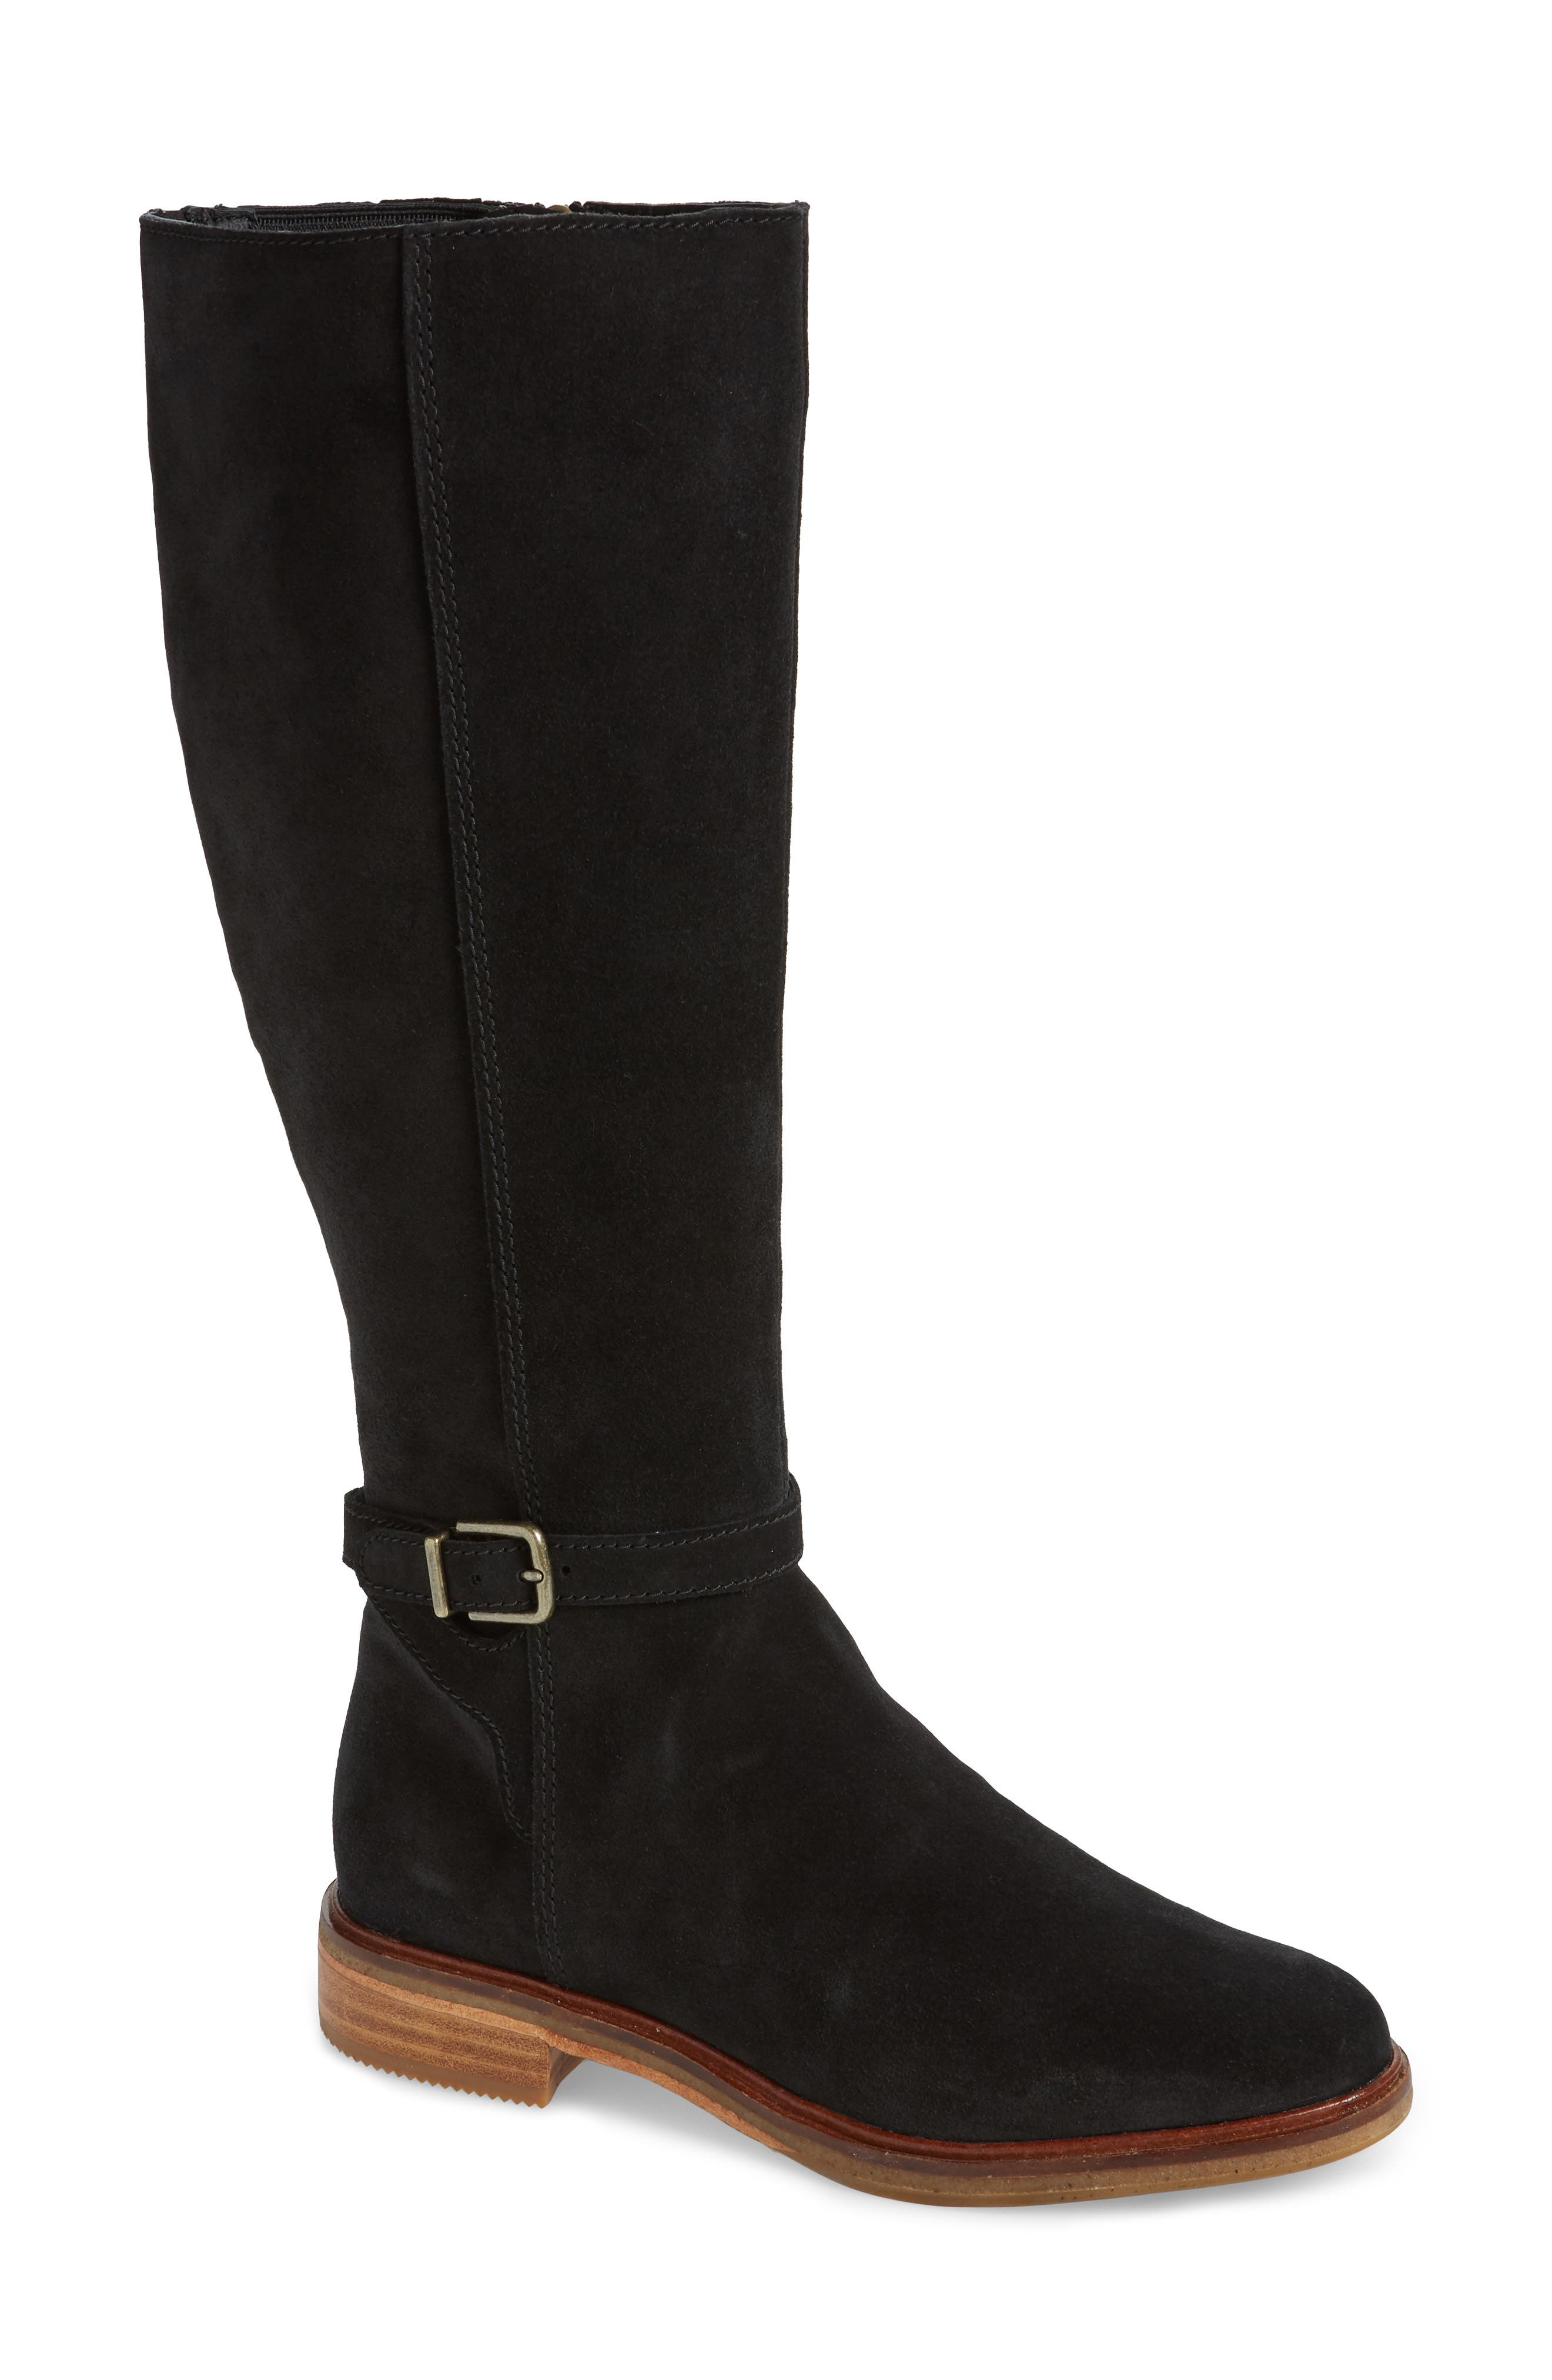 CLARKS<SUP>®</SUP>, Clarkdale Clad Boot, Main thumbnail 1, color, BLACK SUEDE